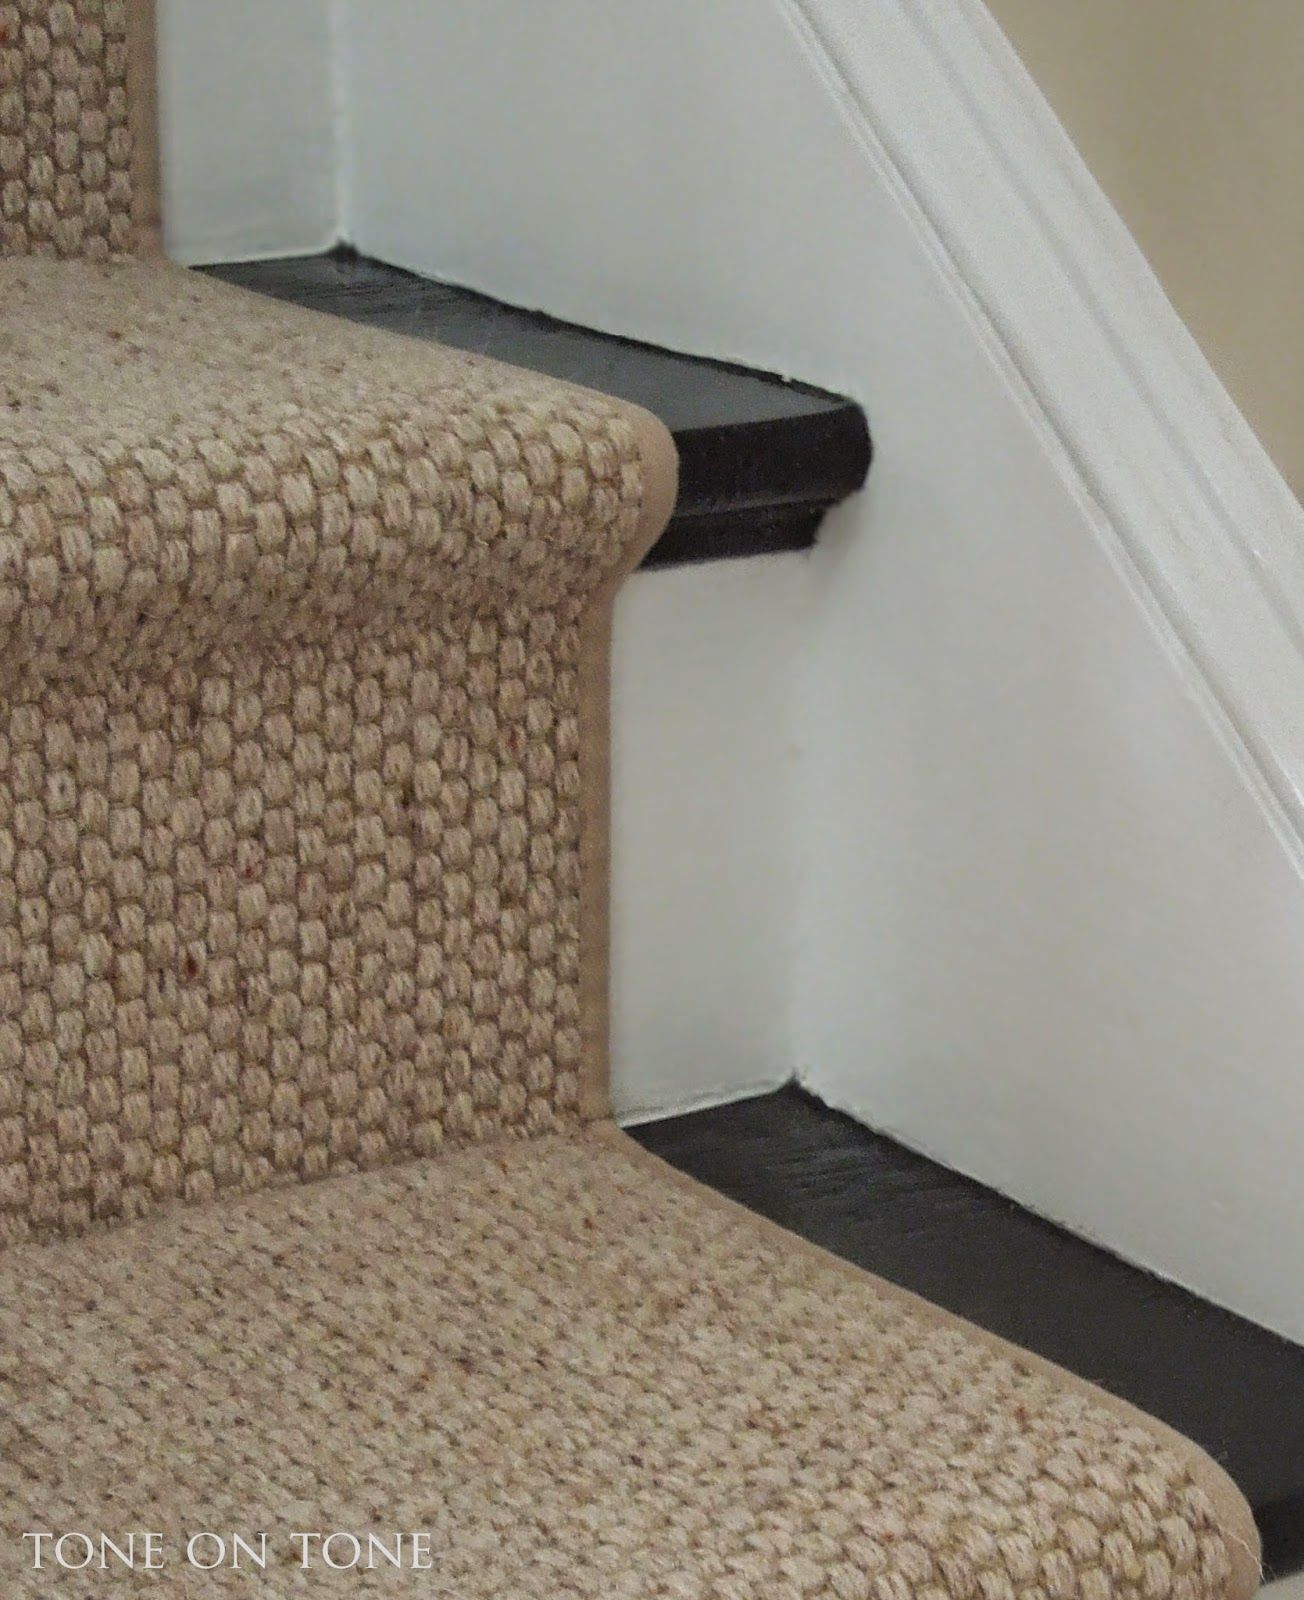 Tone On I Chose A Wool Sisal Style Staircase Runner With Very Narrow Binding